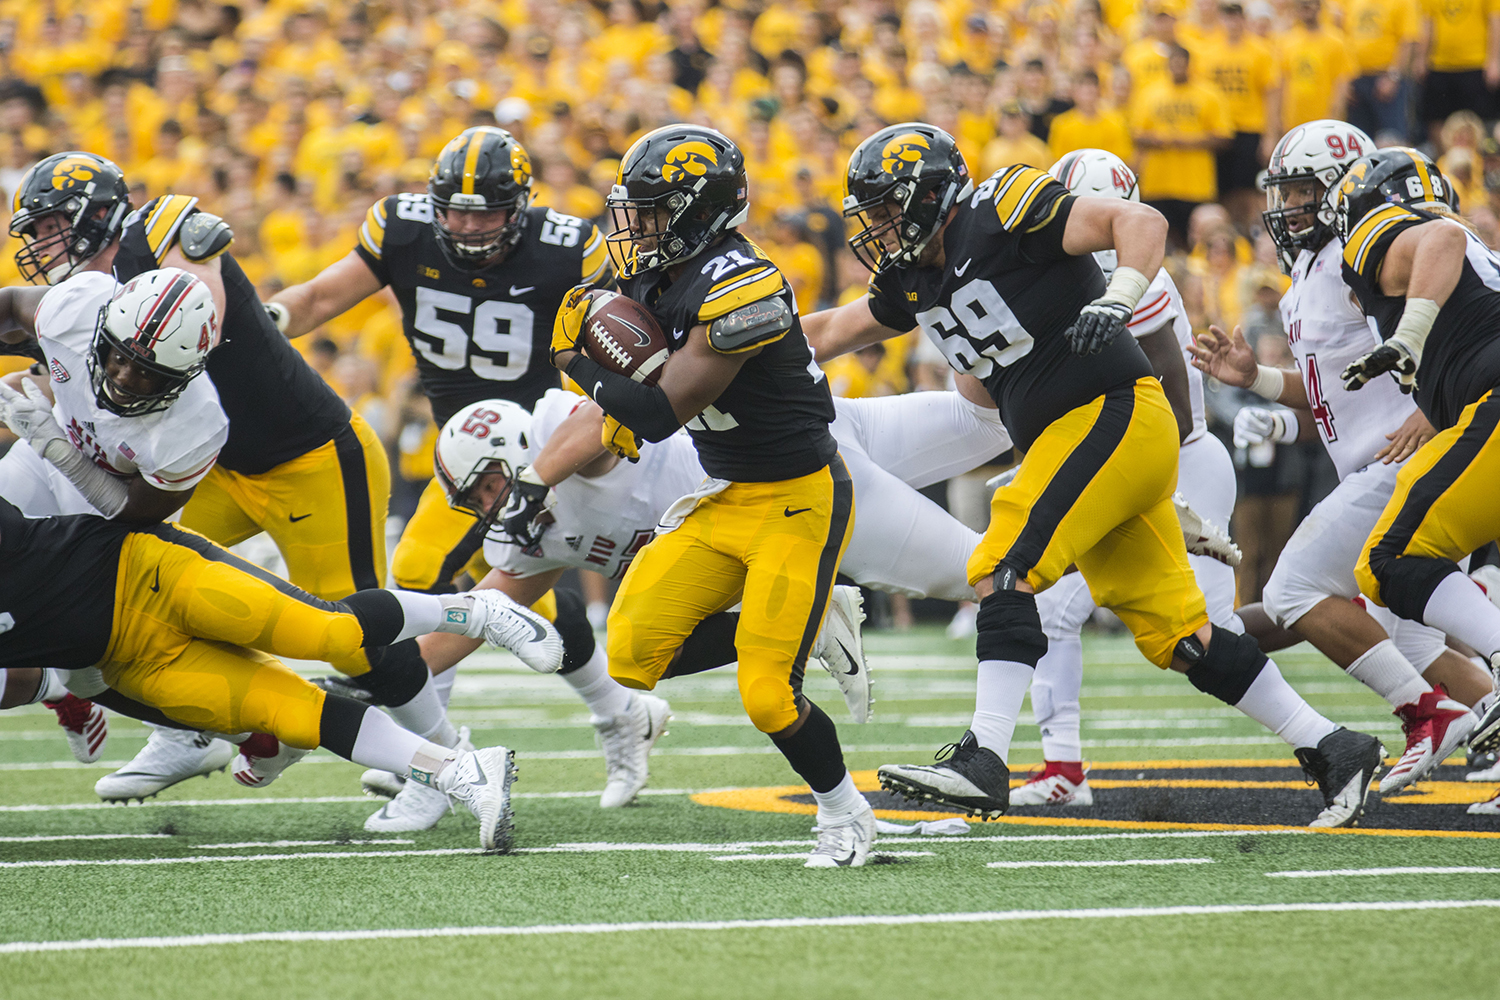 Iowa running back Ivory Kelly-Martin runs with the ball during the Iowa/NIU football game at Kinnick Stadium on Saturday, Sept. 1, 2018. The Hawkeyes defeated the Huskies, 33-7.